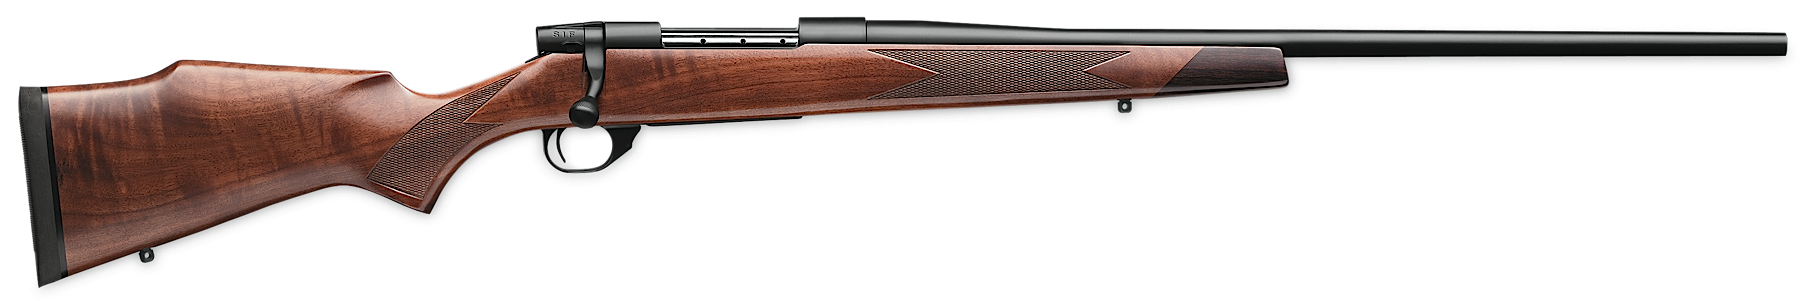 Weatherby Vanguard Sporter 243 Win 24